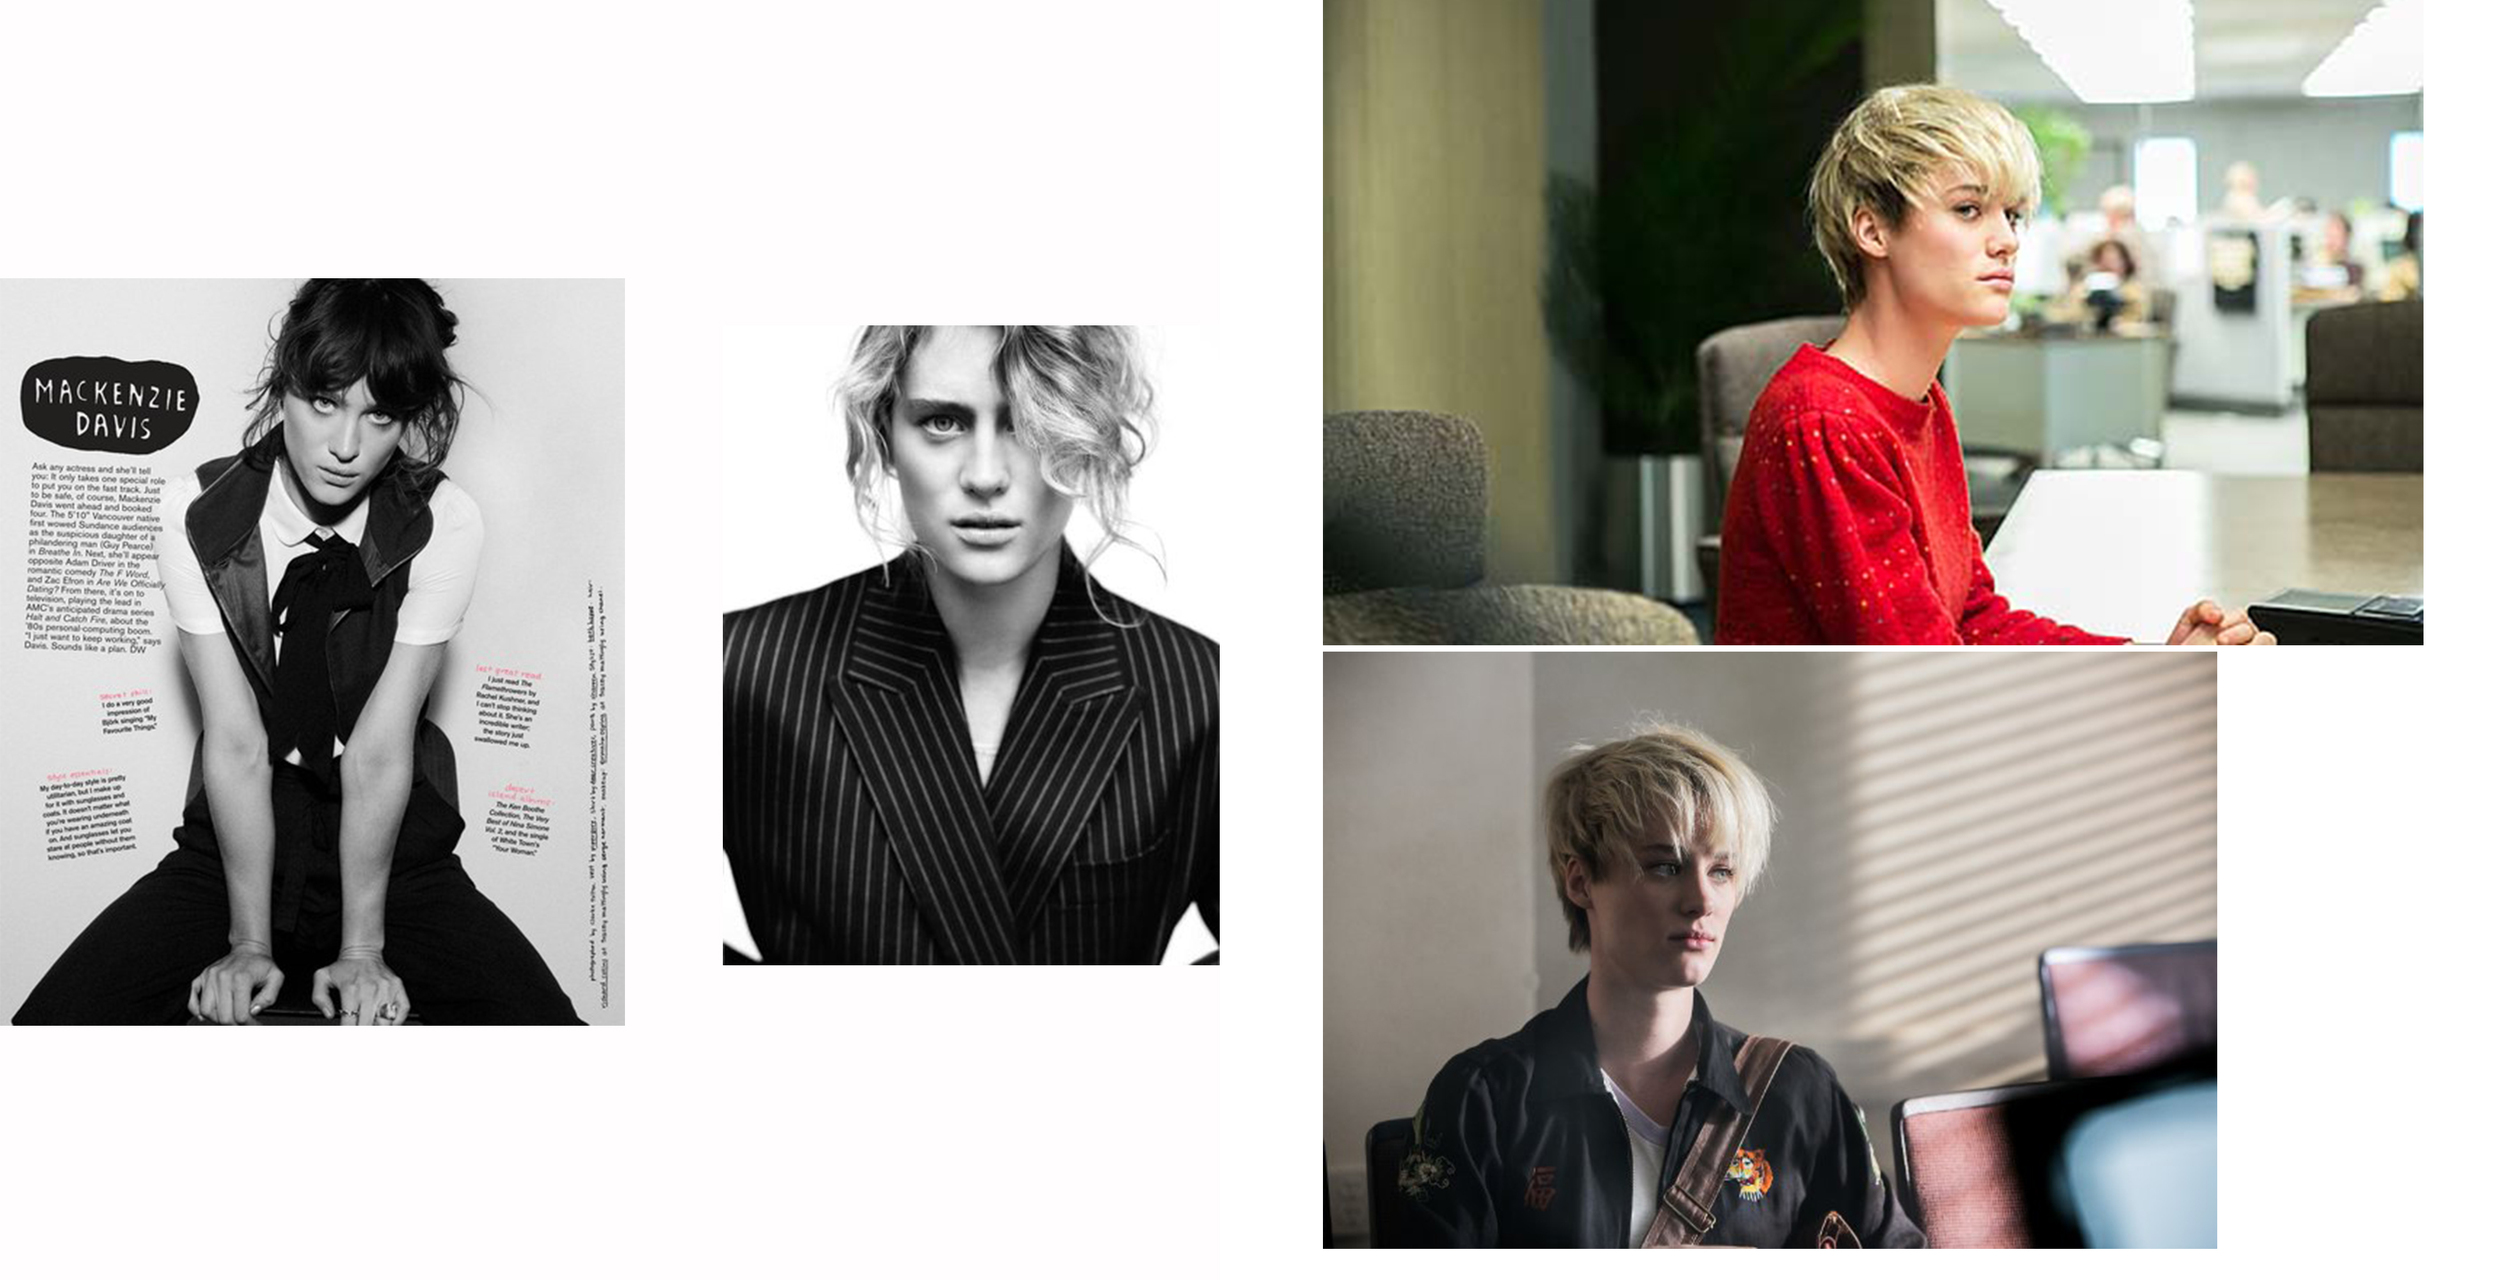 You may recognize her from That Awkward Moment, Mackenzie Davis. She is set to star in AMC's new serious Halt and Catch Fire.    http://www.amctv.com/shows/halt-and-catch-fire